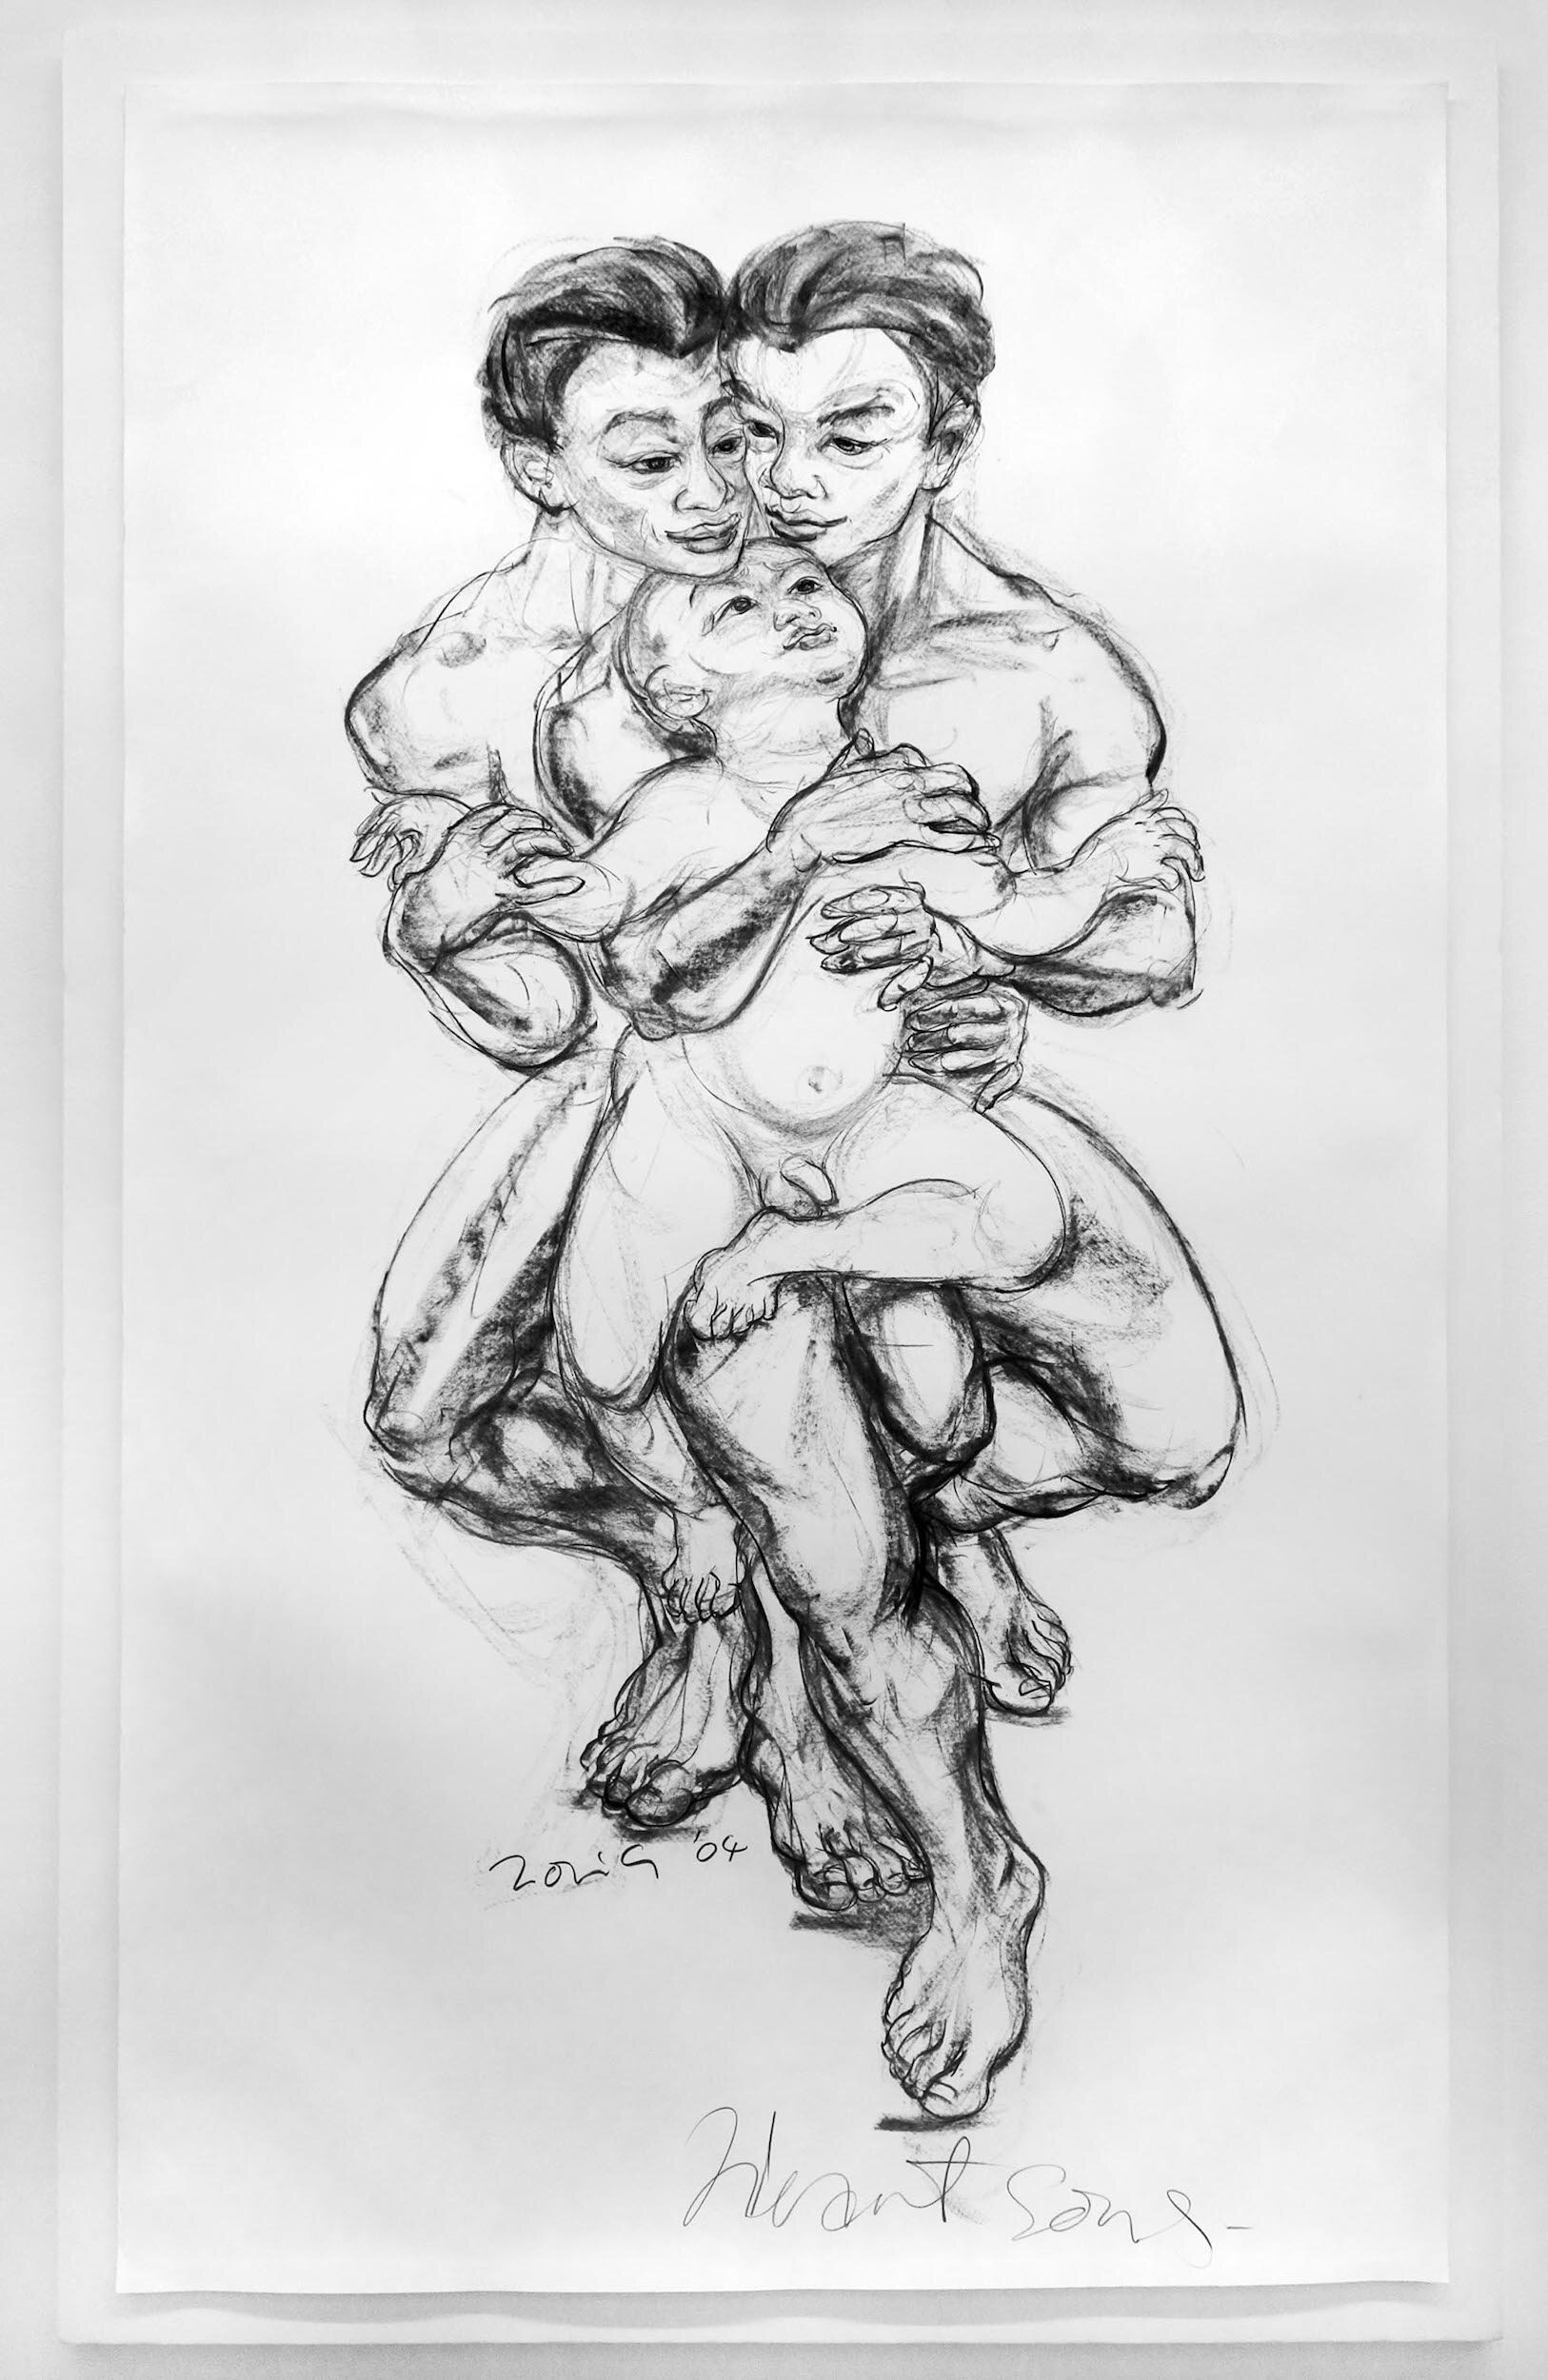 Jimmy Ong, 'Heart Sons', 2004, charcoal on paper, 216 x 126cm. Image courtesy of the artist and FOST Gallery.